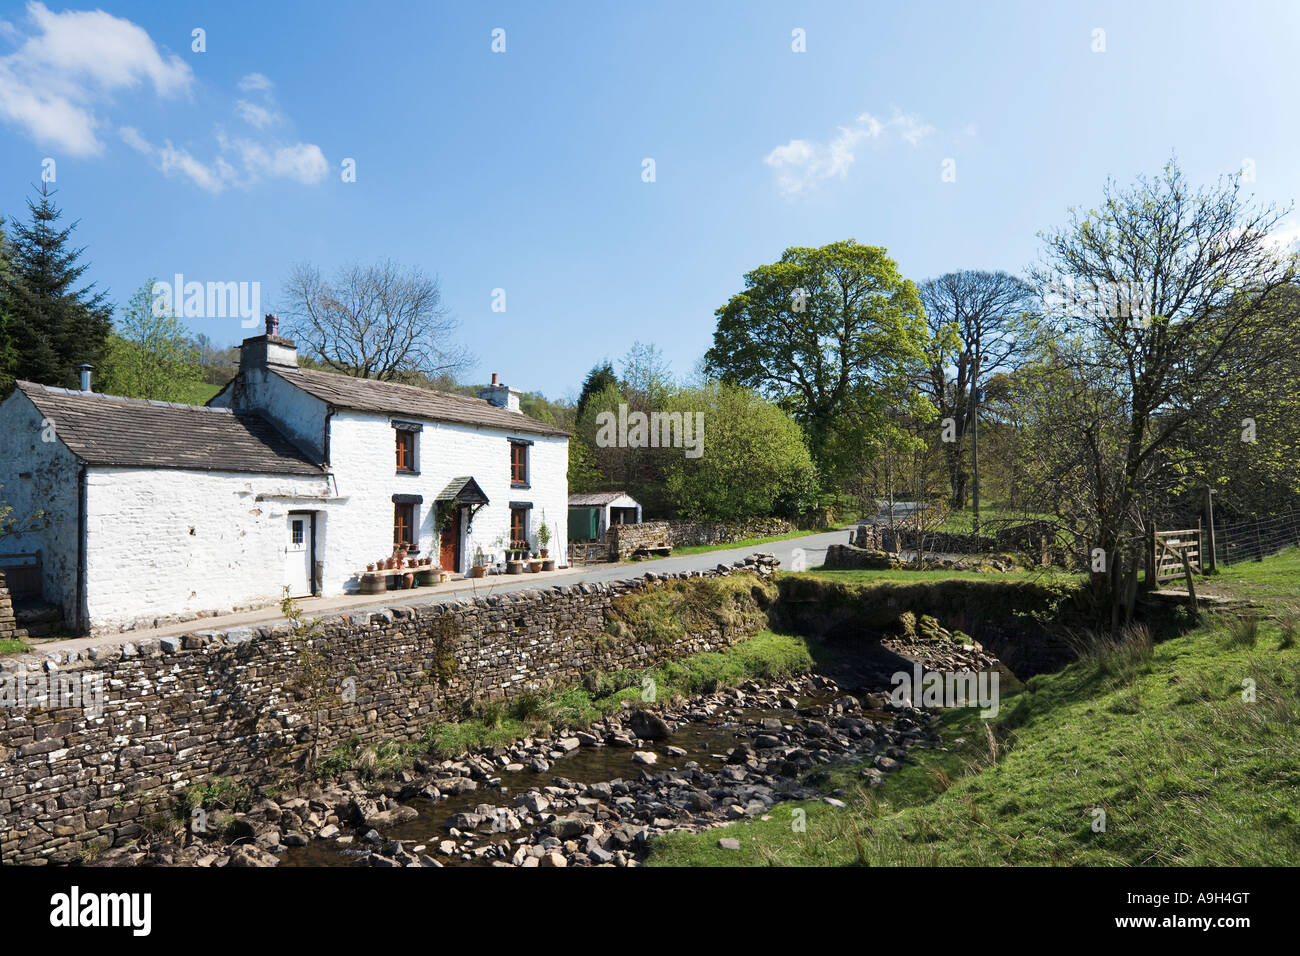 Cottage on Country Road near Cowgill, Dentdale, Yorkshire Dales National Park, North Yorkshire, England, UK - Stock Image